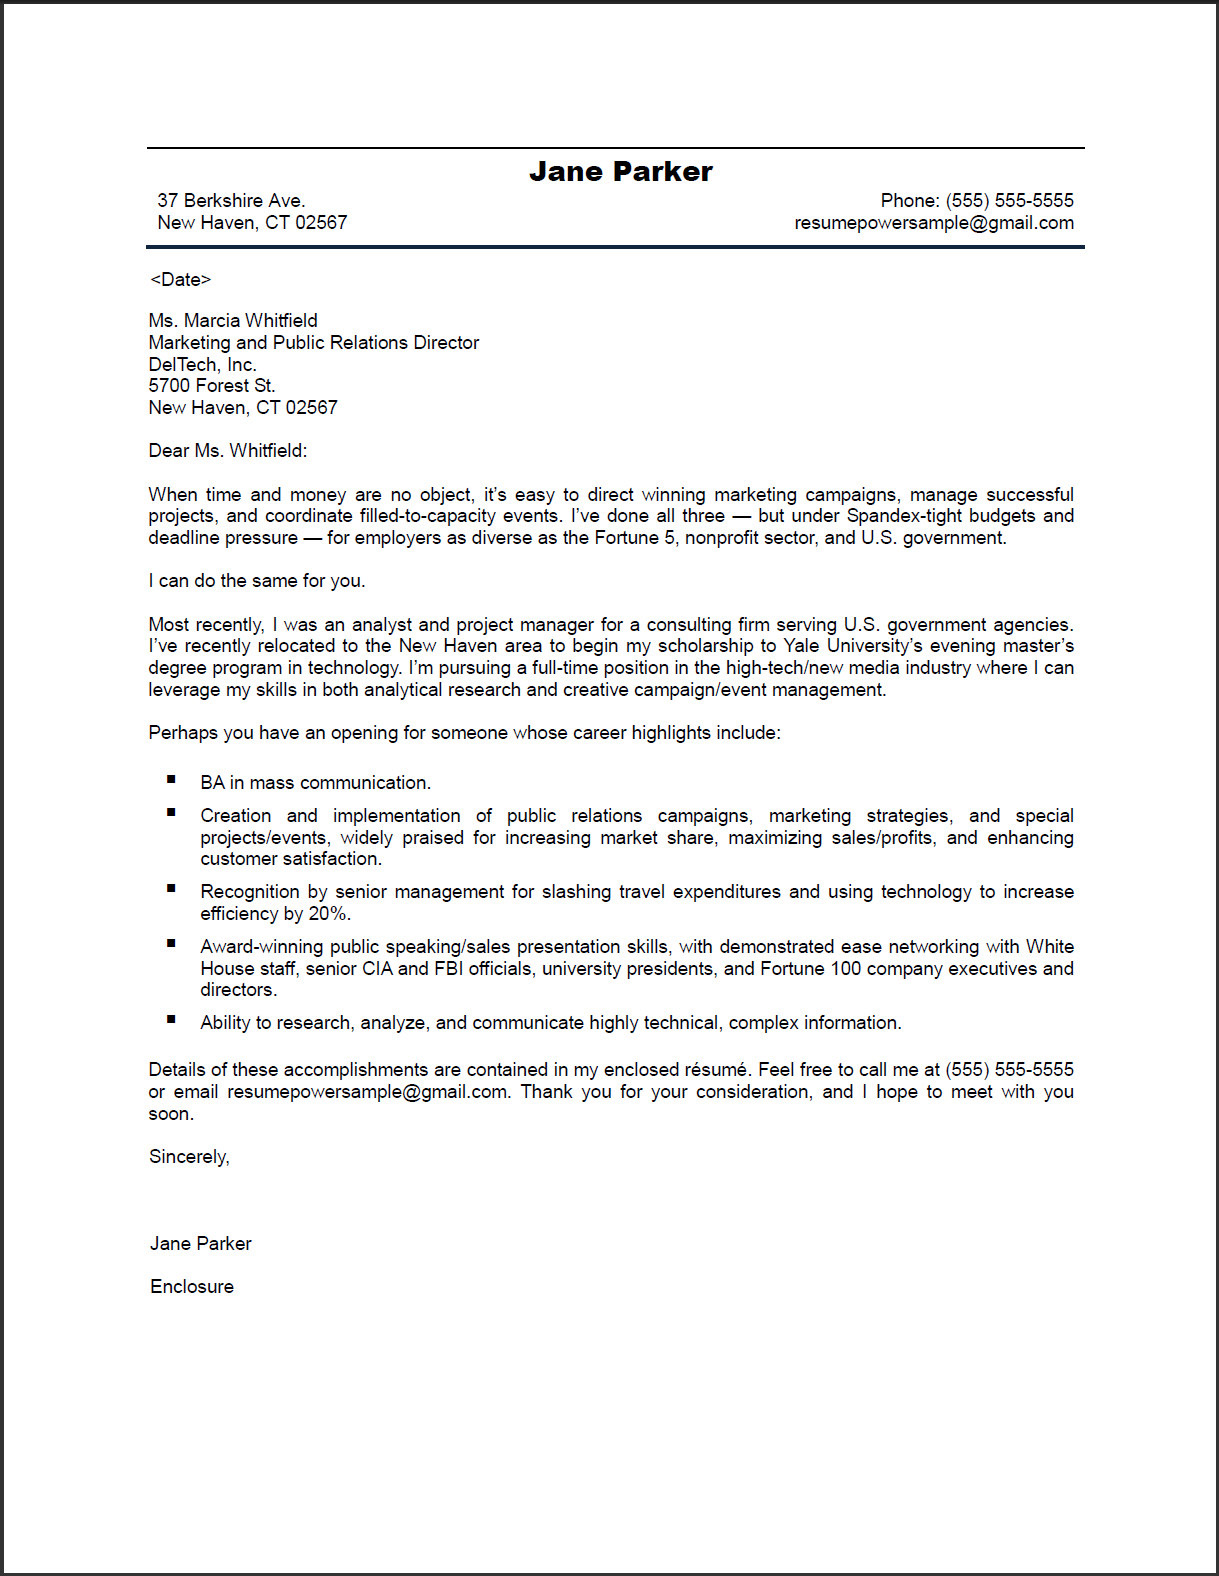 Email Job Application Cover Letter   Cover Letter Templates Cover Letter Templates